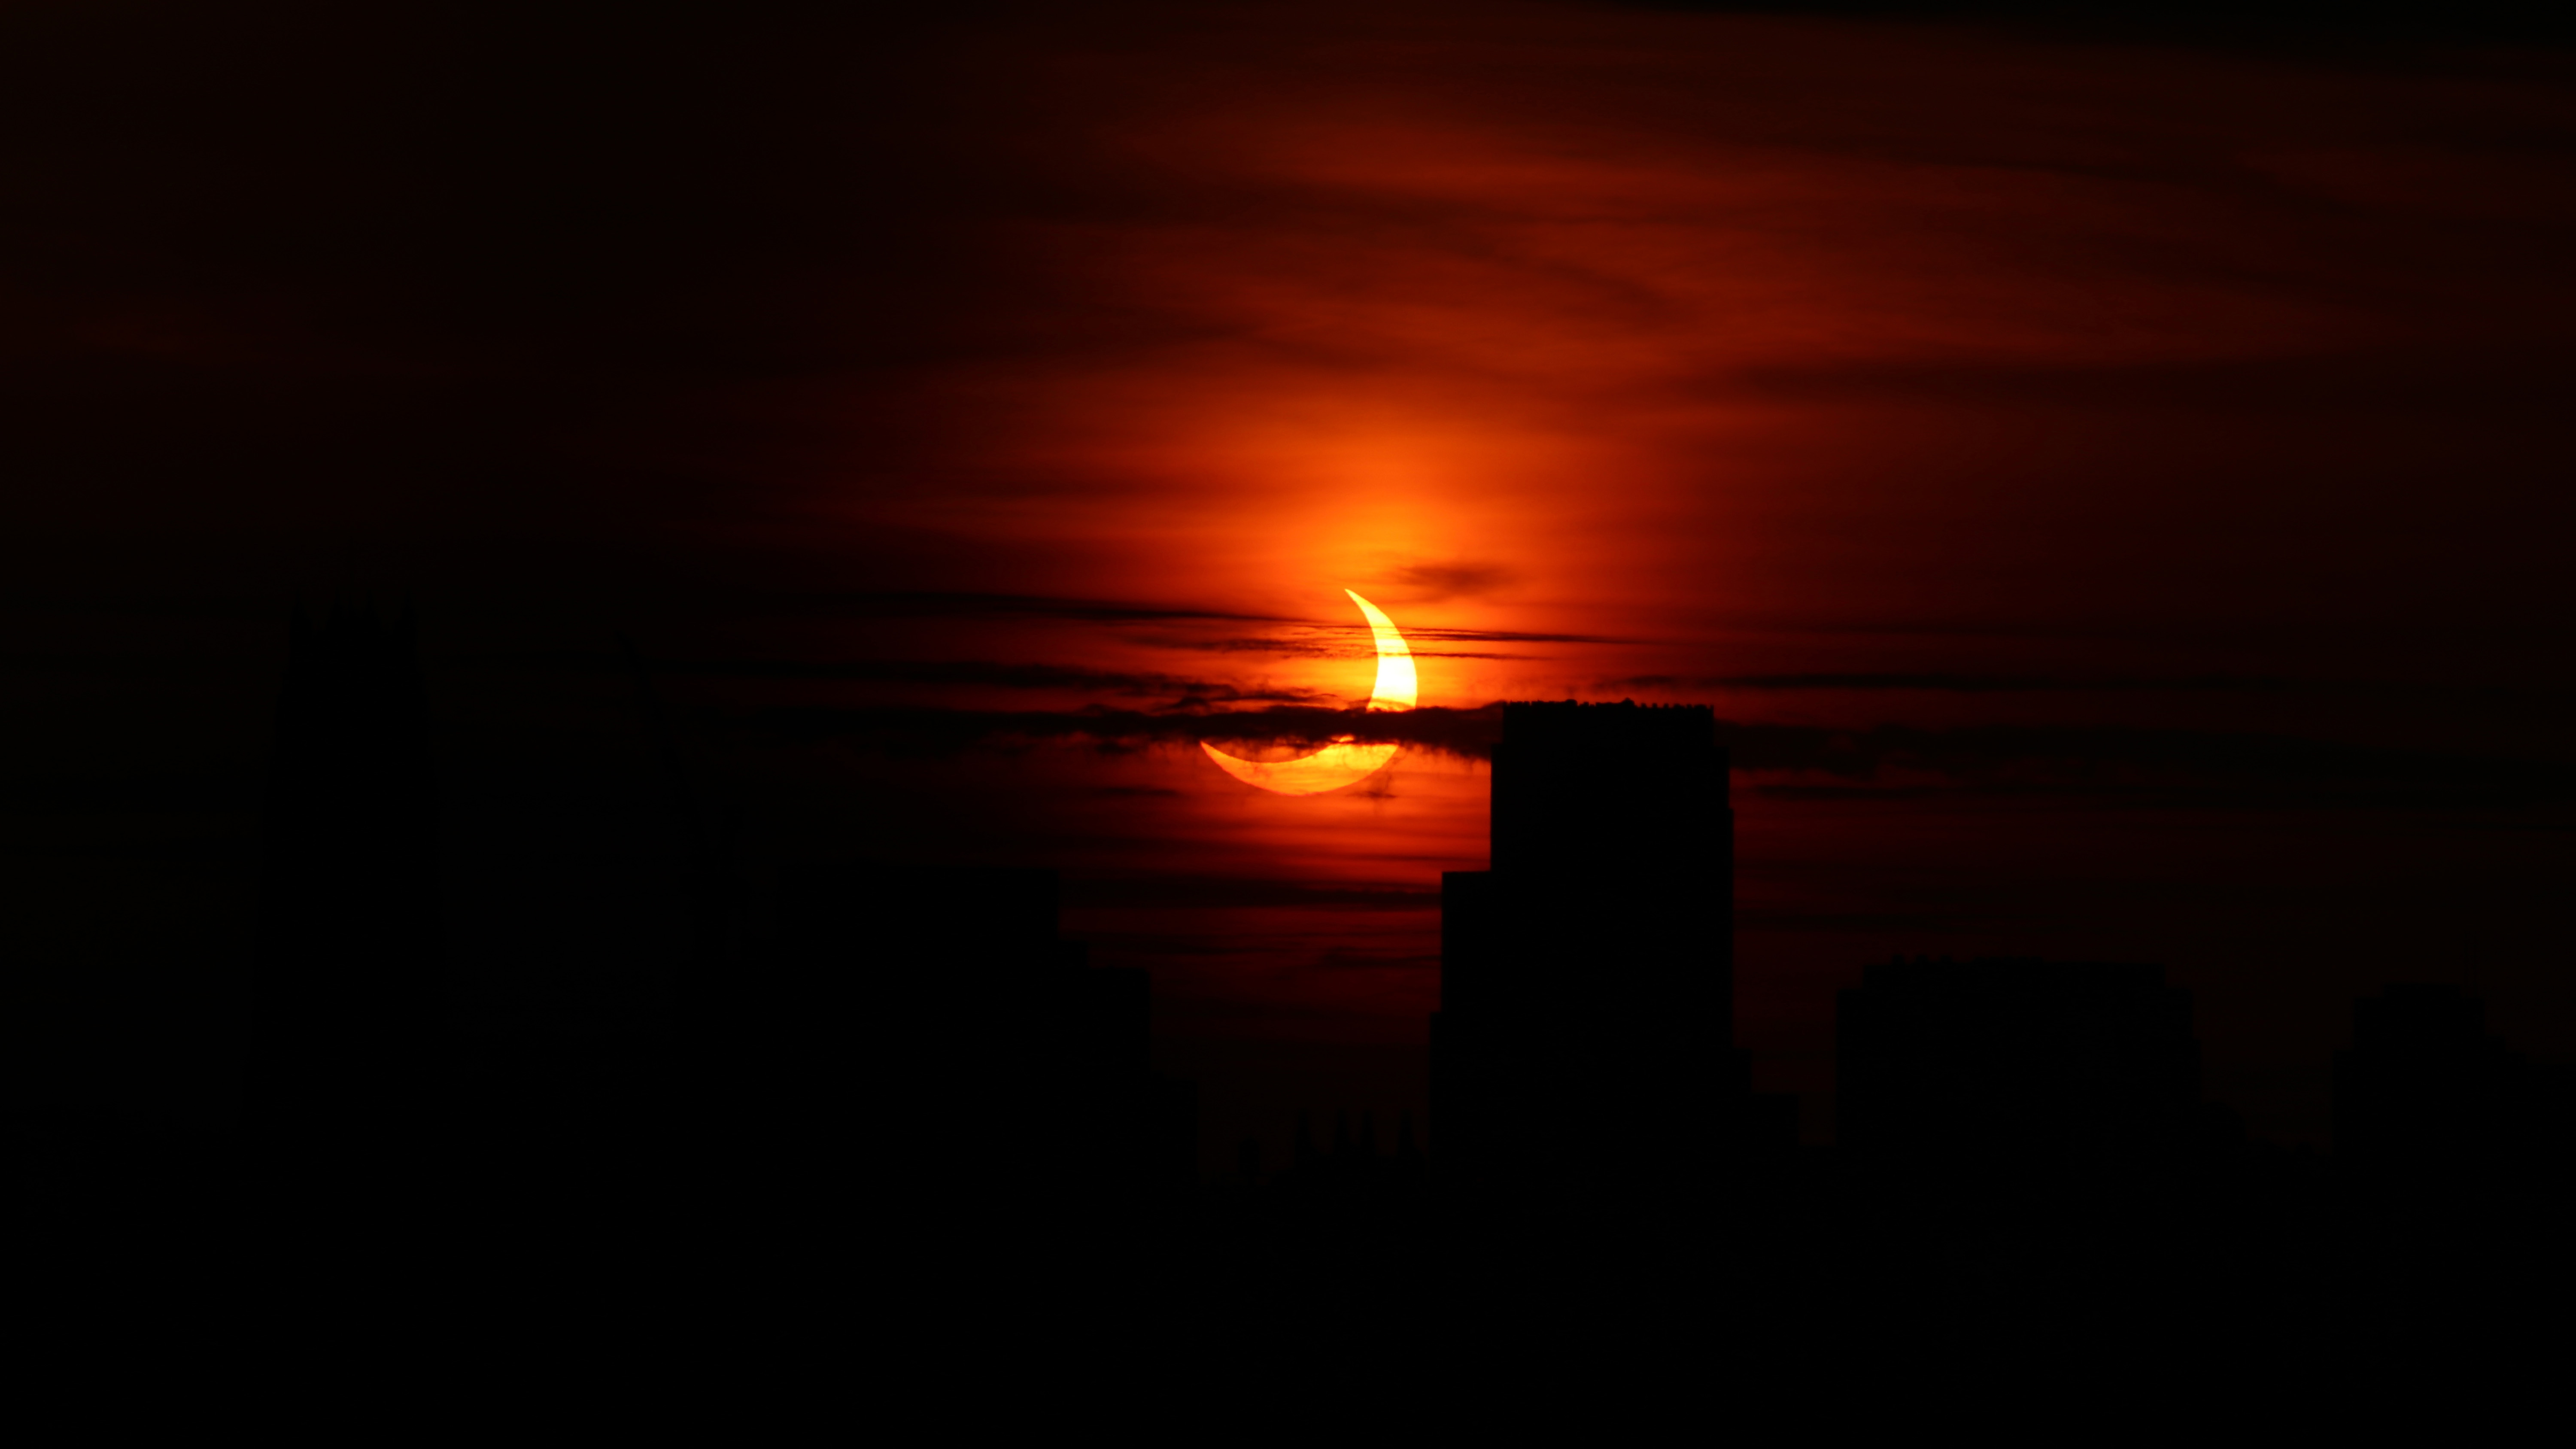 'Ring of fire' solar eclipse wows skywatchers (Photos) thumbnail